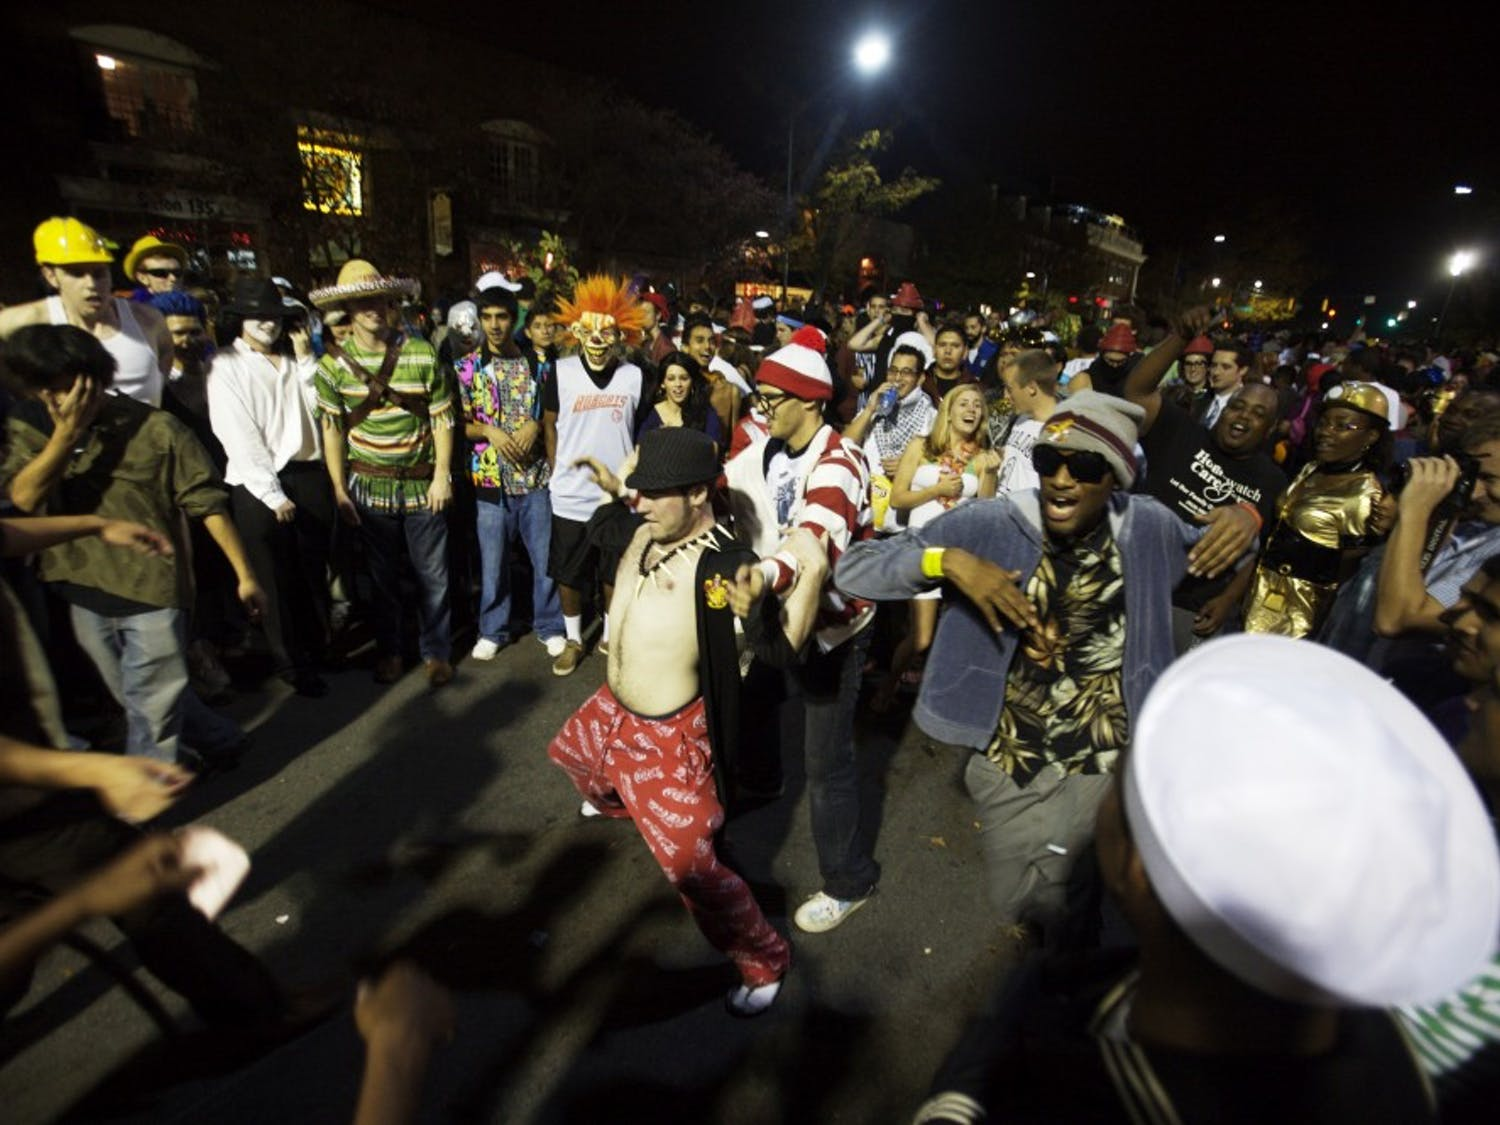 A crowd celebrates Halloween on Franklin Street in 2009. Police will treat Saturday as Homecoming, and do not expect two Halloweens.